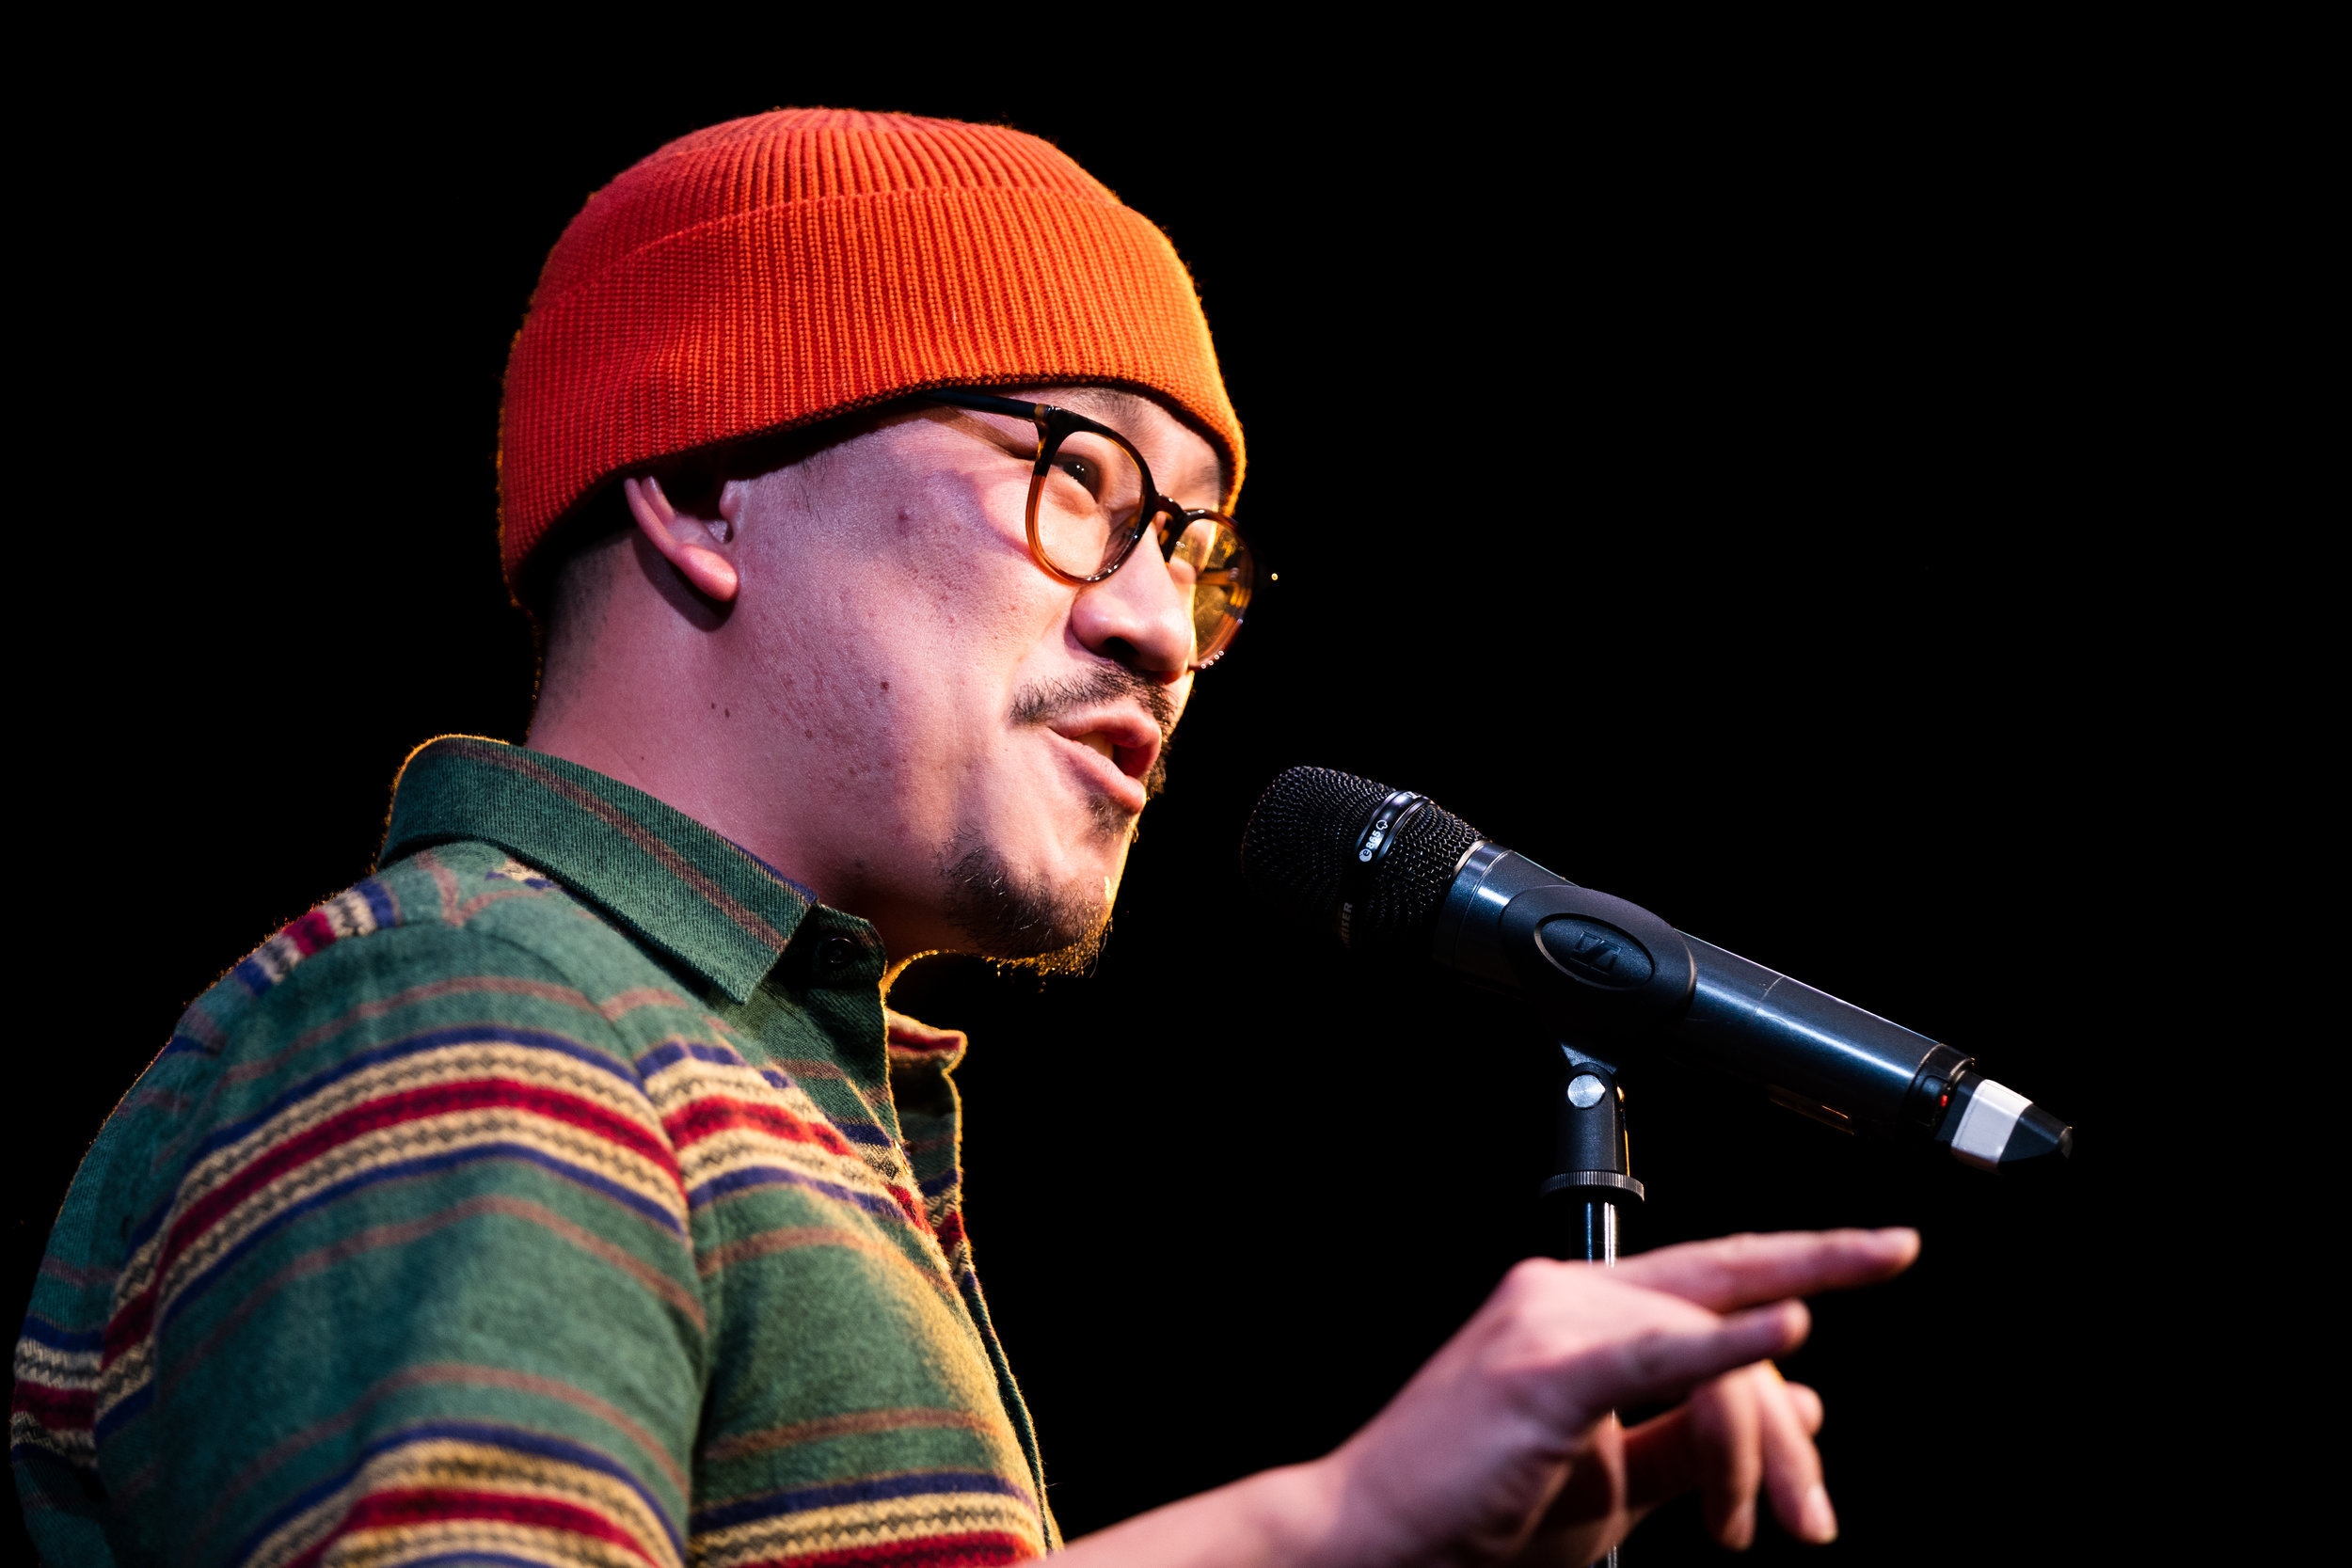 Will Tran shares his story with our Story Collider audience at Caveat in New York City in December 2018. Photo by Zhen Qin.